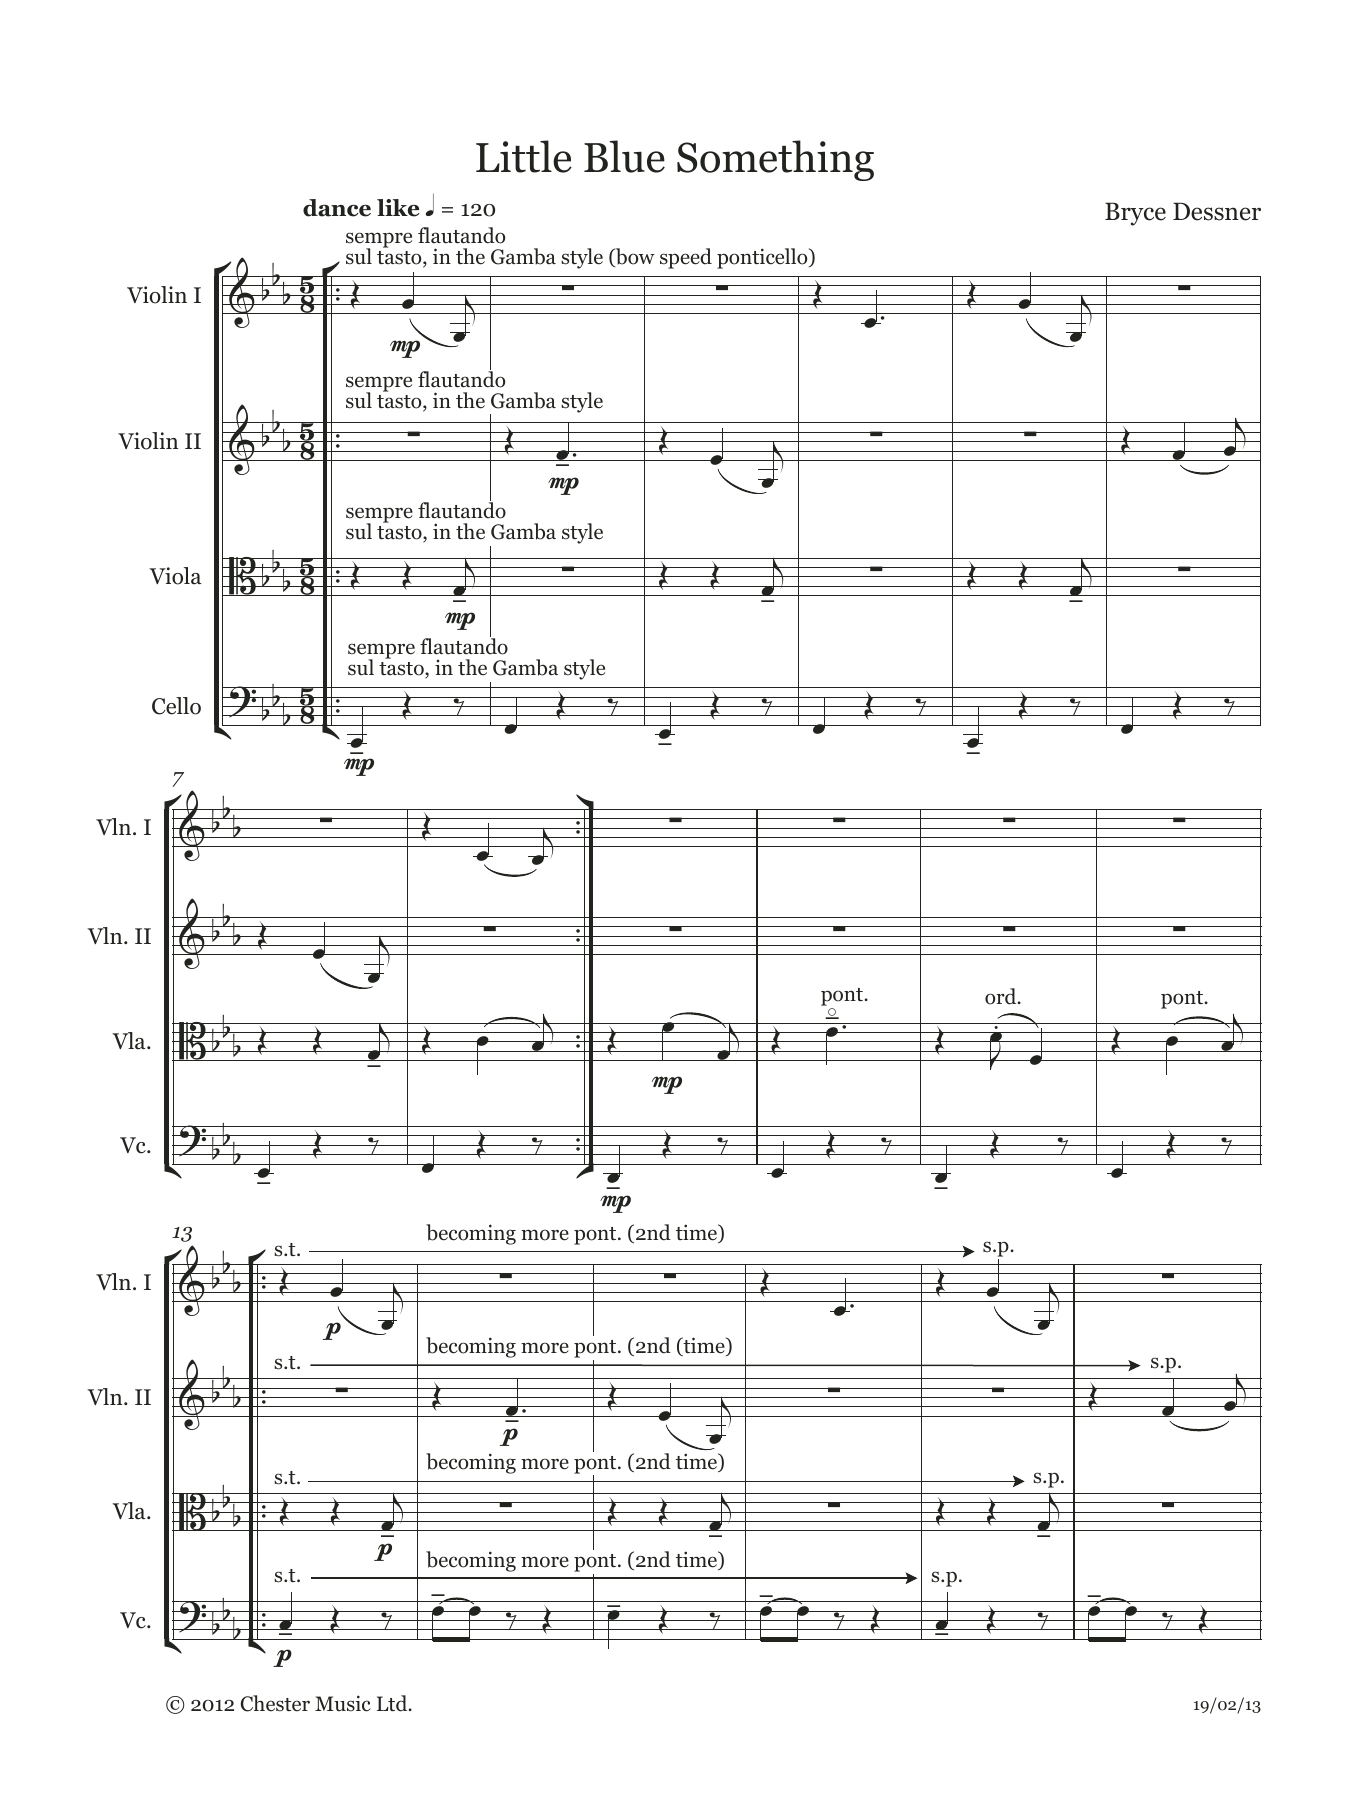 Bryce Dessner - Little Blue Something (String quartet score and parts)